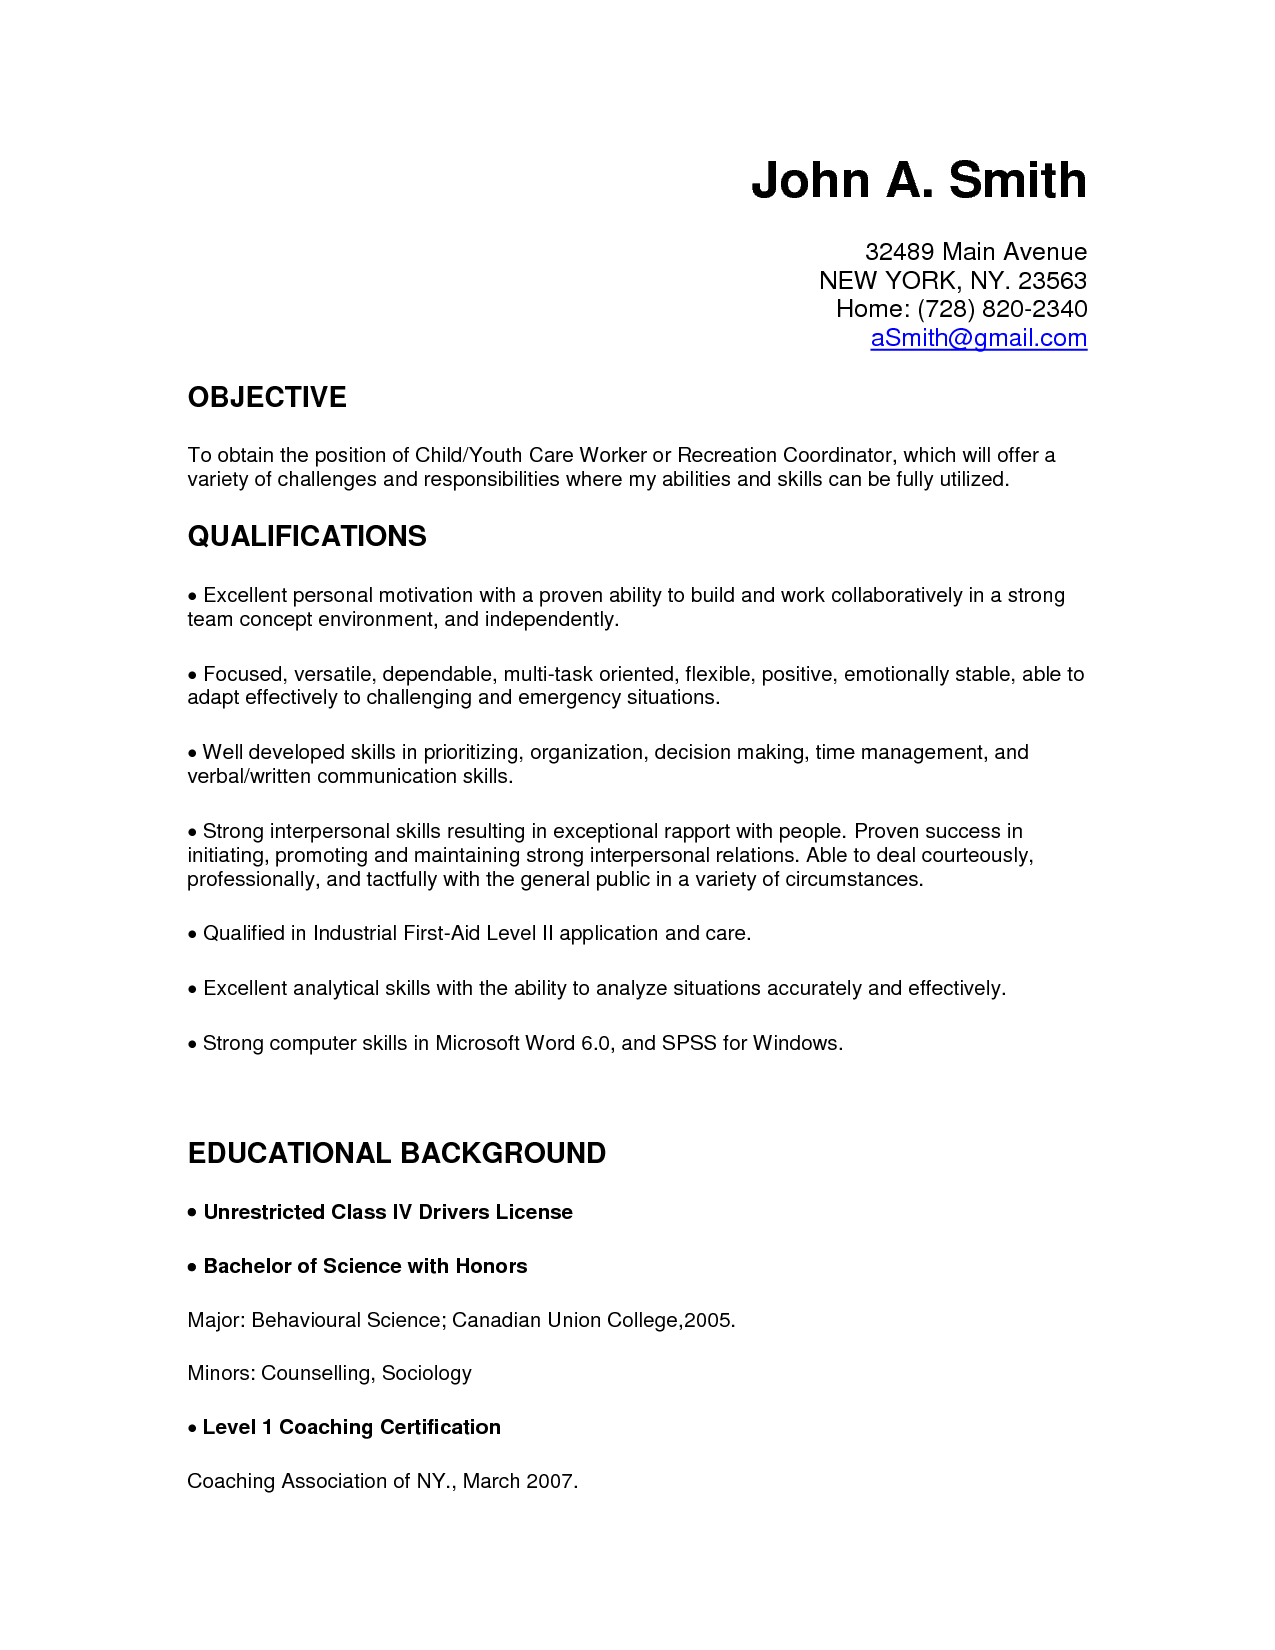 Child Care Resume Cover Letter    Http://www.resumecareer.info/child Care Resume Cover Letter 2/